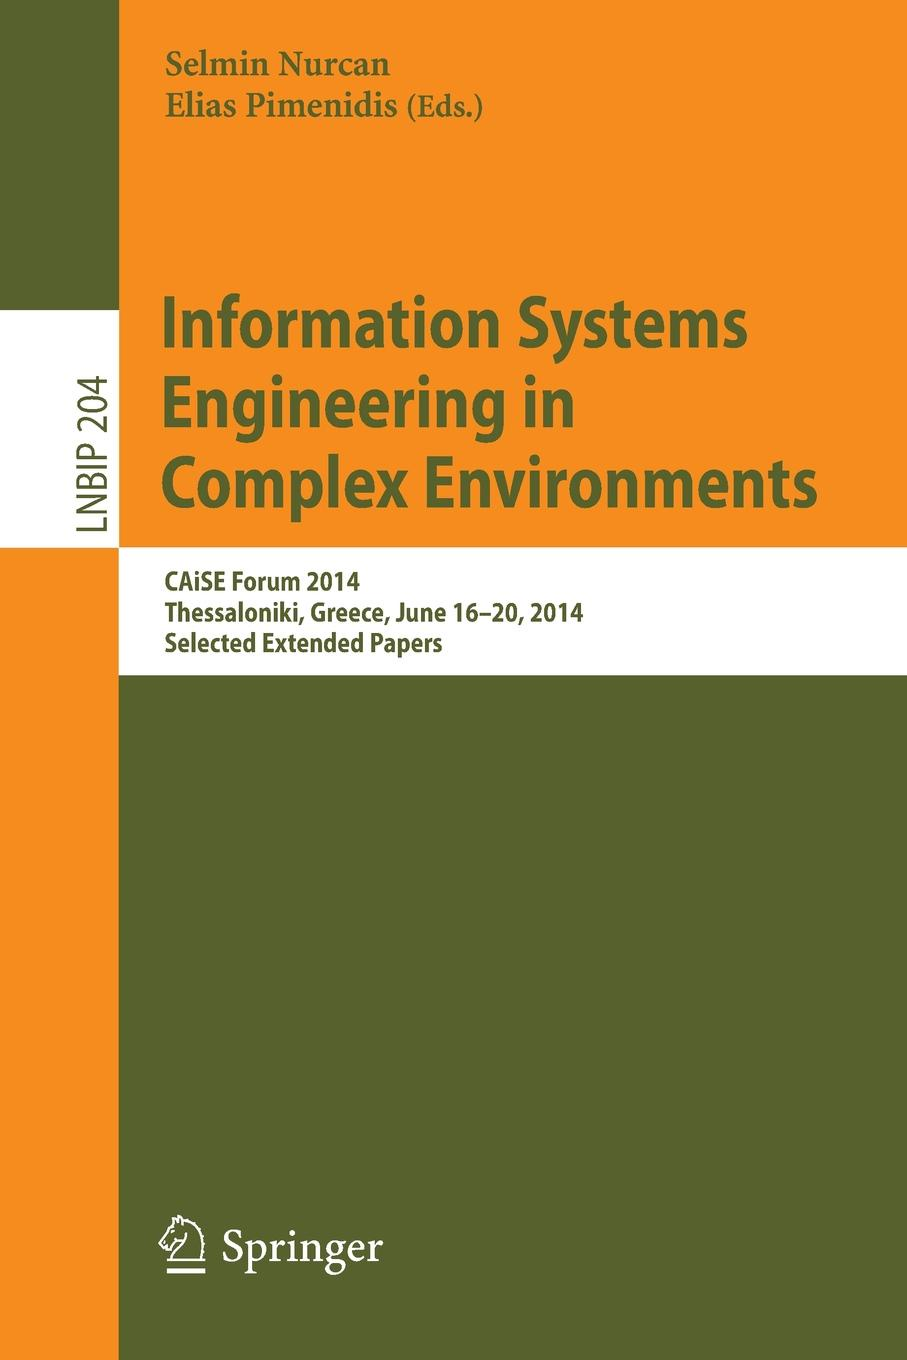 Information Systems Engineering in Complex Environments. CAiSE Forum 2014, Thessaloniki, Greece, June 16-20, 2014, Selected Extended Papers cyber security and privacy third cyber security and privacy eu forum csp forum 2014 athens greece may 21 22 2014 revised selected papers